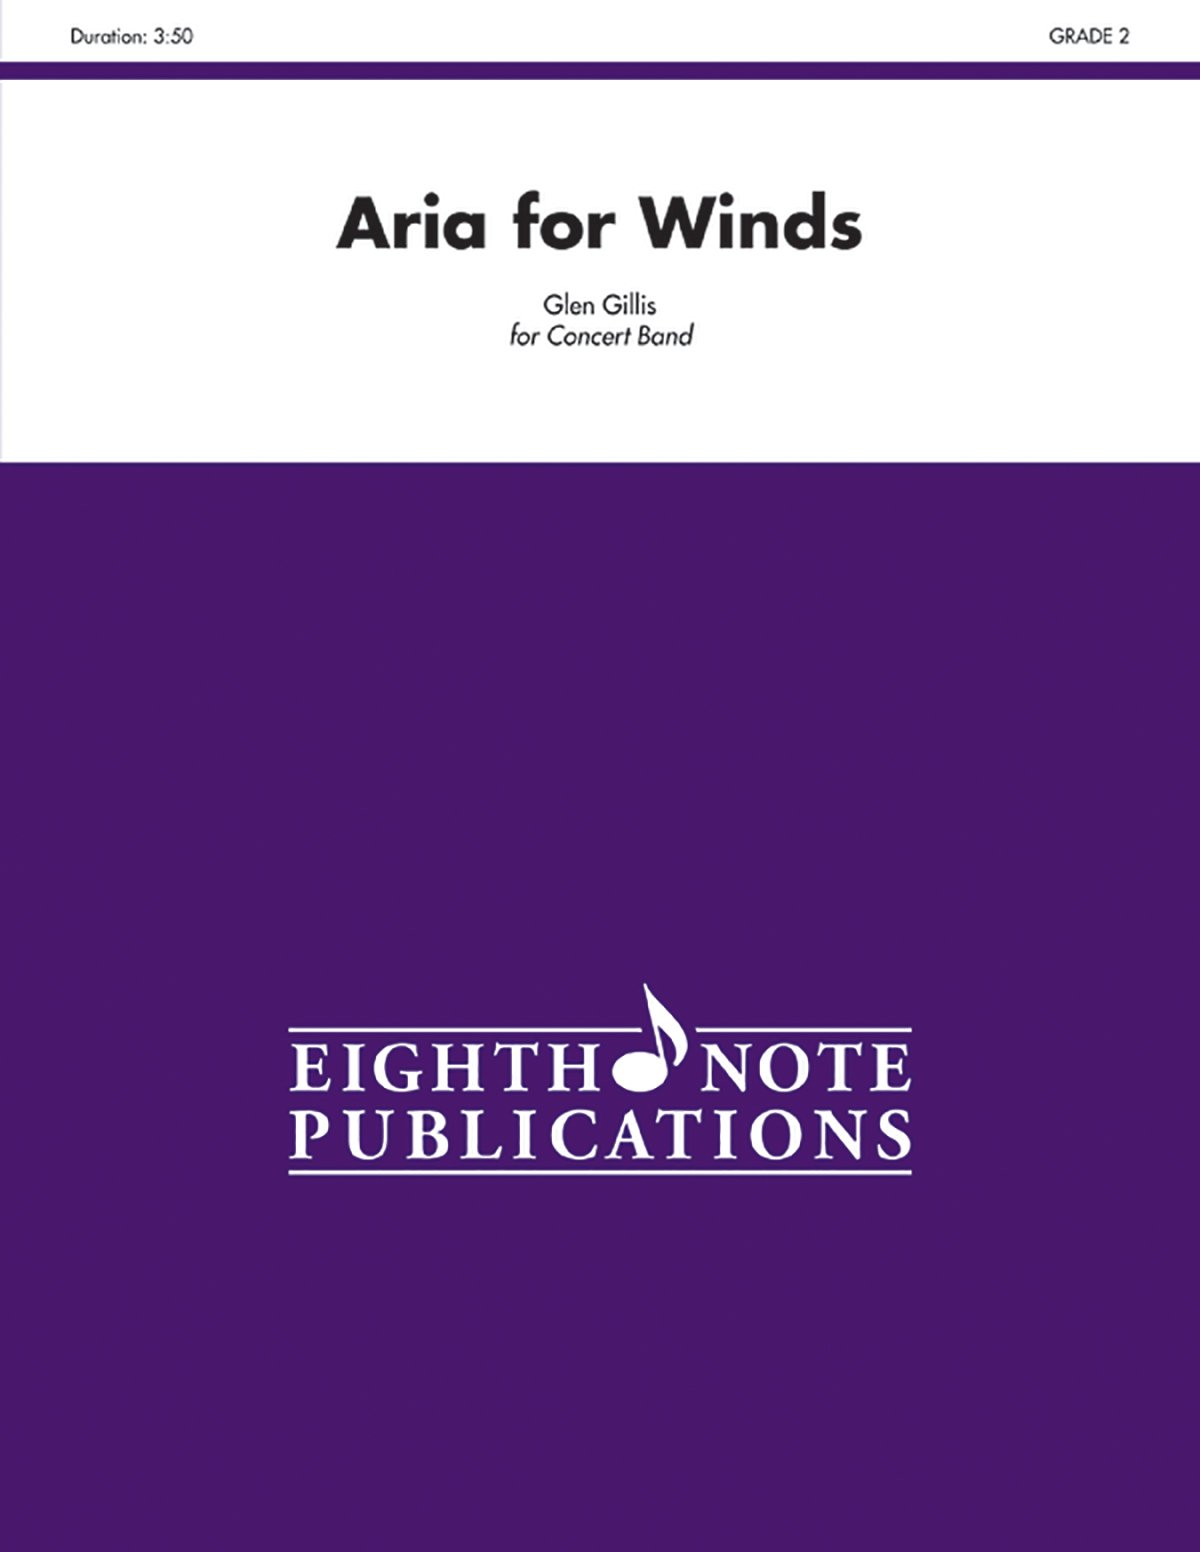 Download Aria for Winds: Conductor Score & Parts (Eighth Note Publications) pdf